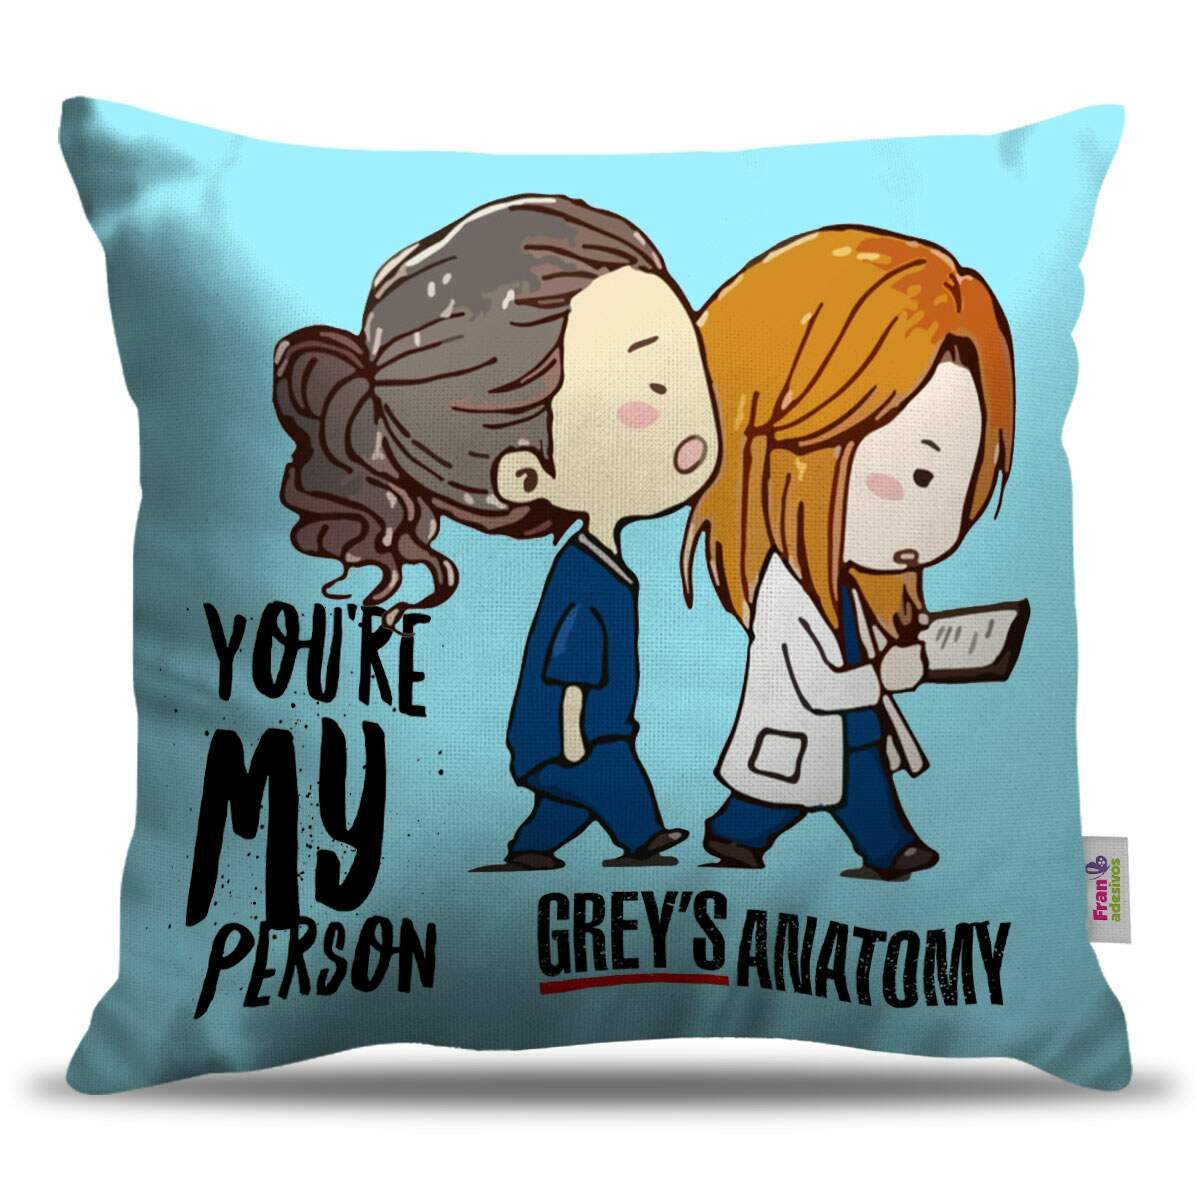 Almofada Decorativa Greys Anatomy 01